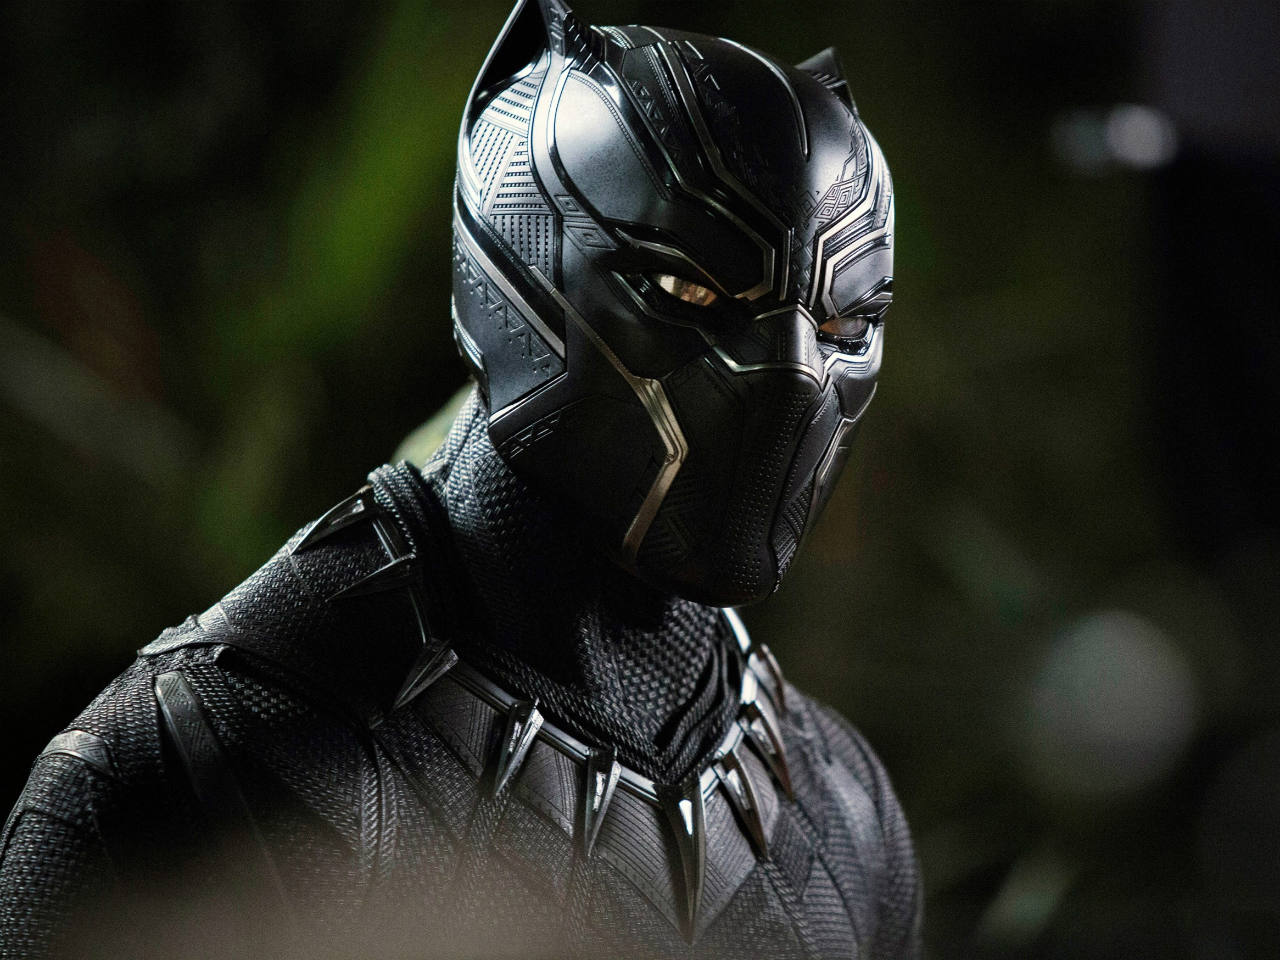 A still of Black Panther